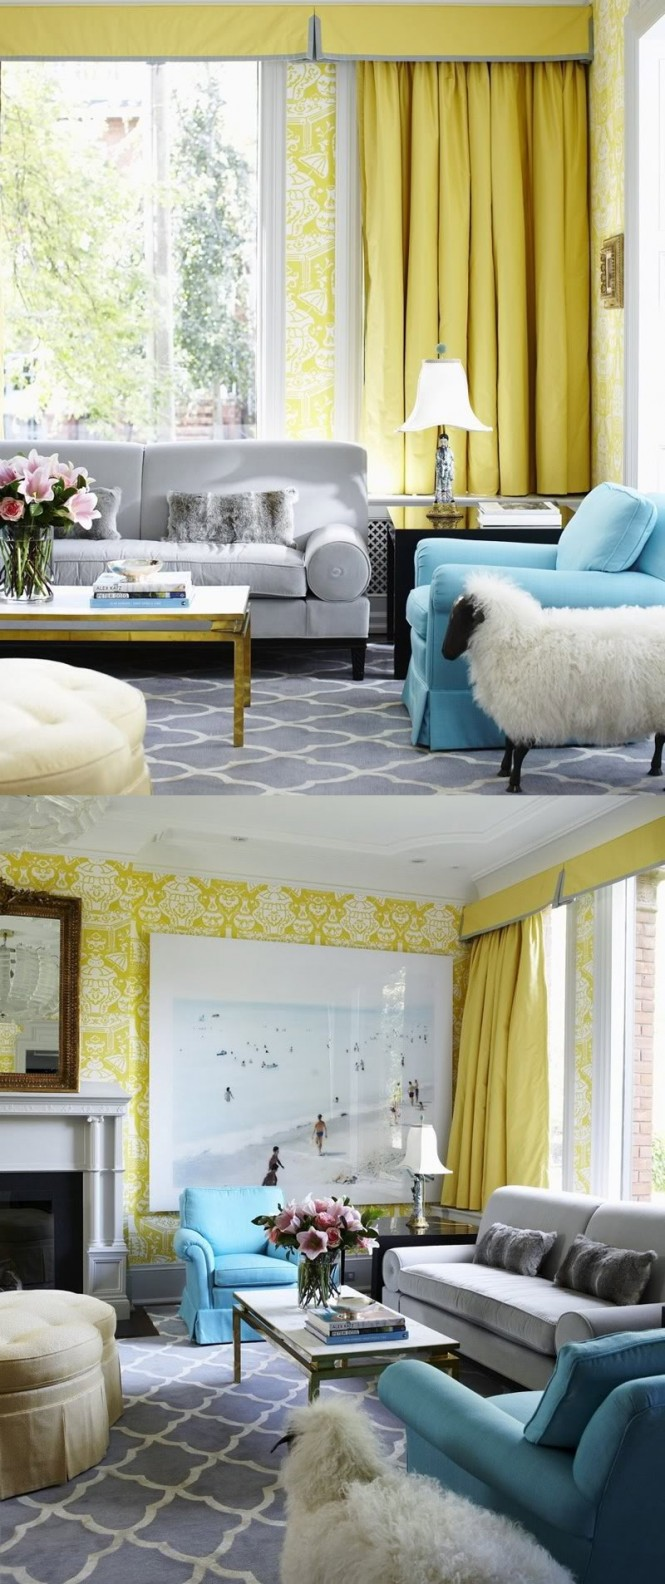 Via Marcus DesignUsing dove grey as a backdrop, duck egg blue against yellow is stunning.